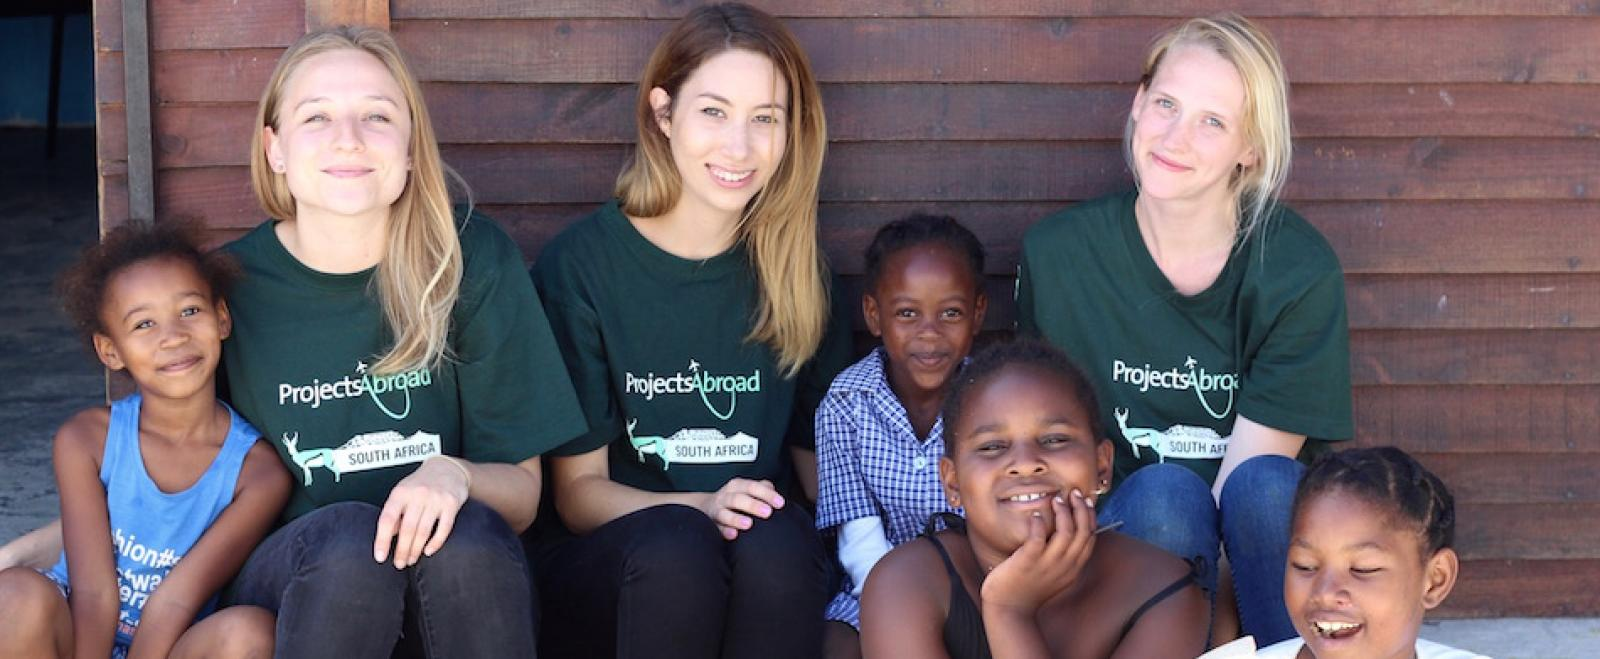 find a travel buddy while volunteering with children in South Africa for teenagers